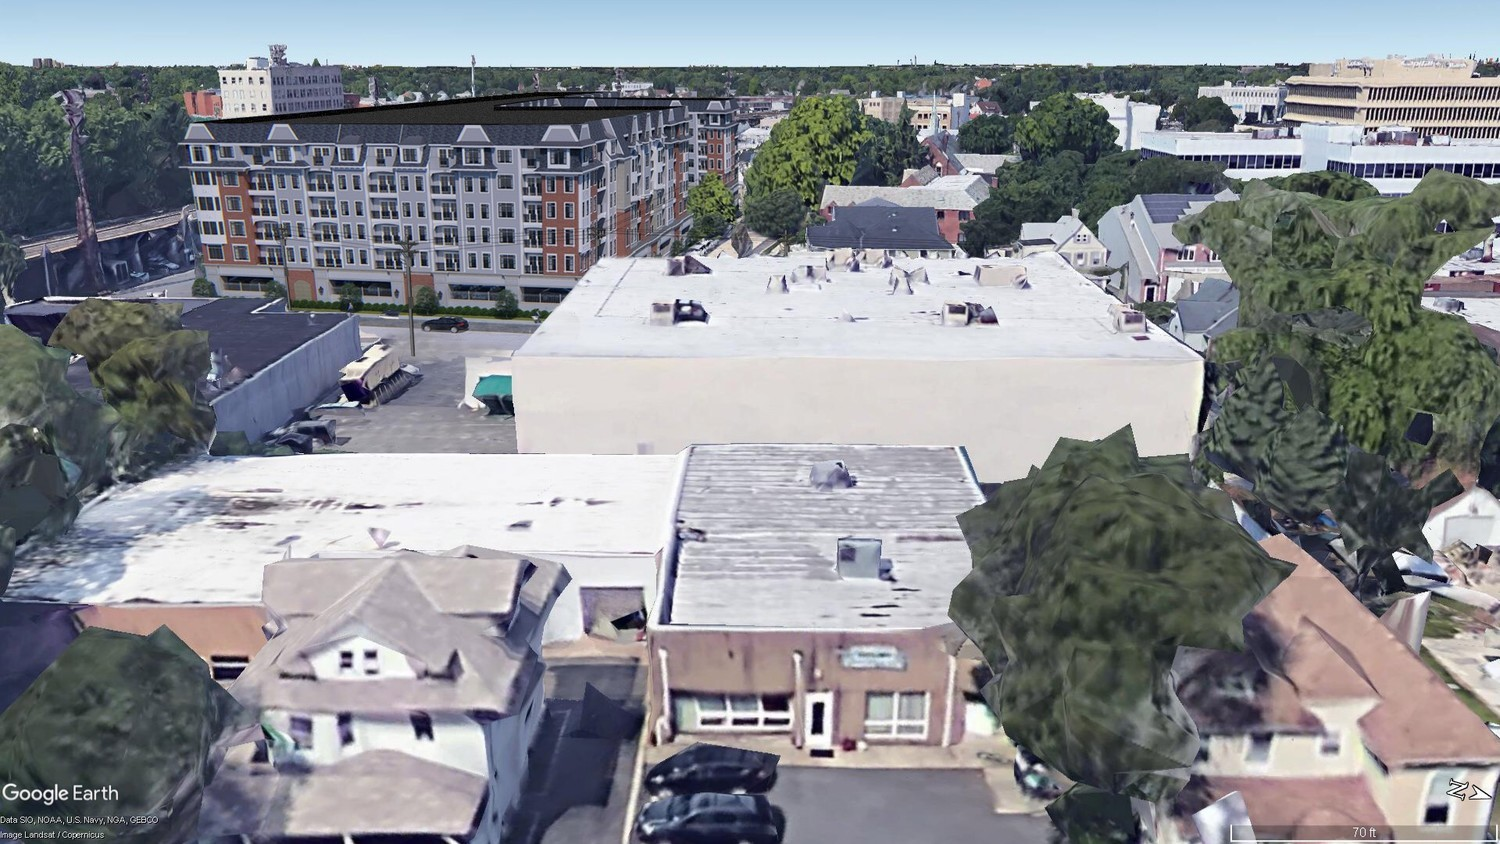 A proposal to build a $75 million, 200-unit apartment complex and a four-story, 400-space parking garage in downtown Lynbrook was denied by the village board on Monday night.